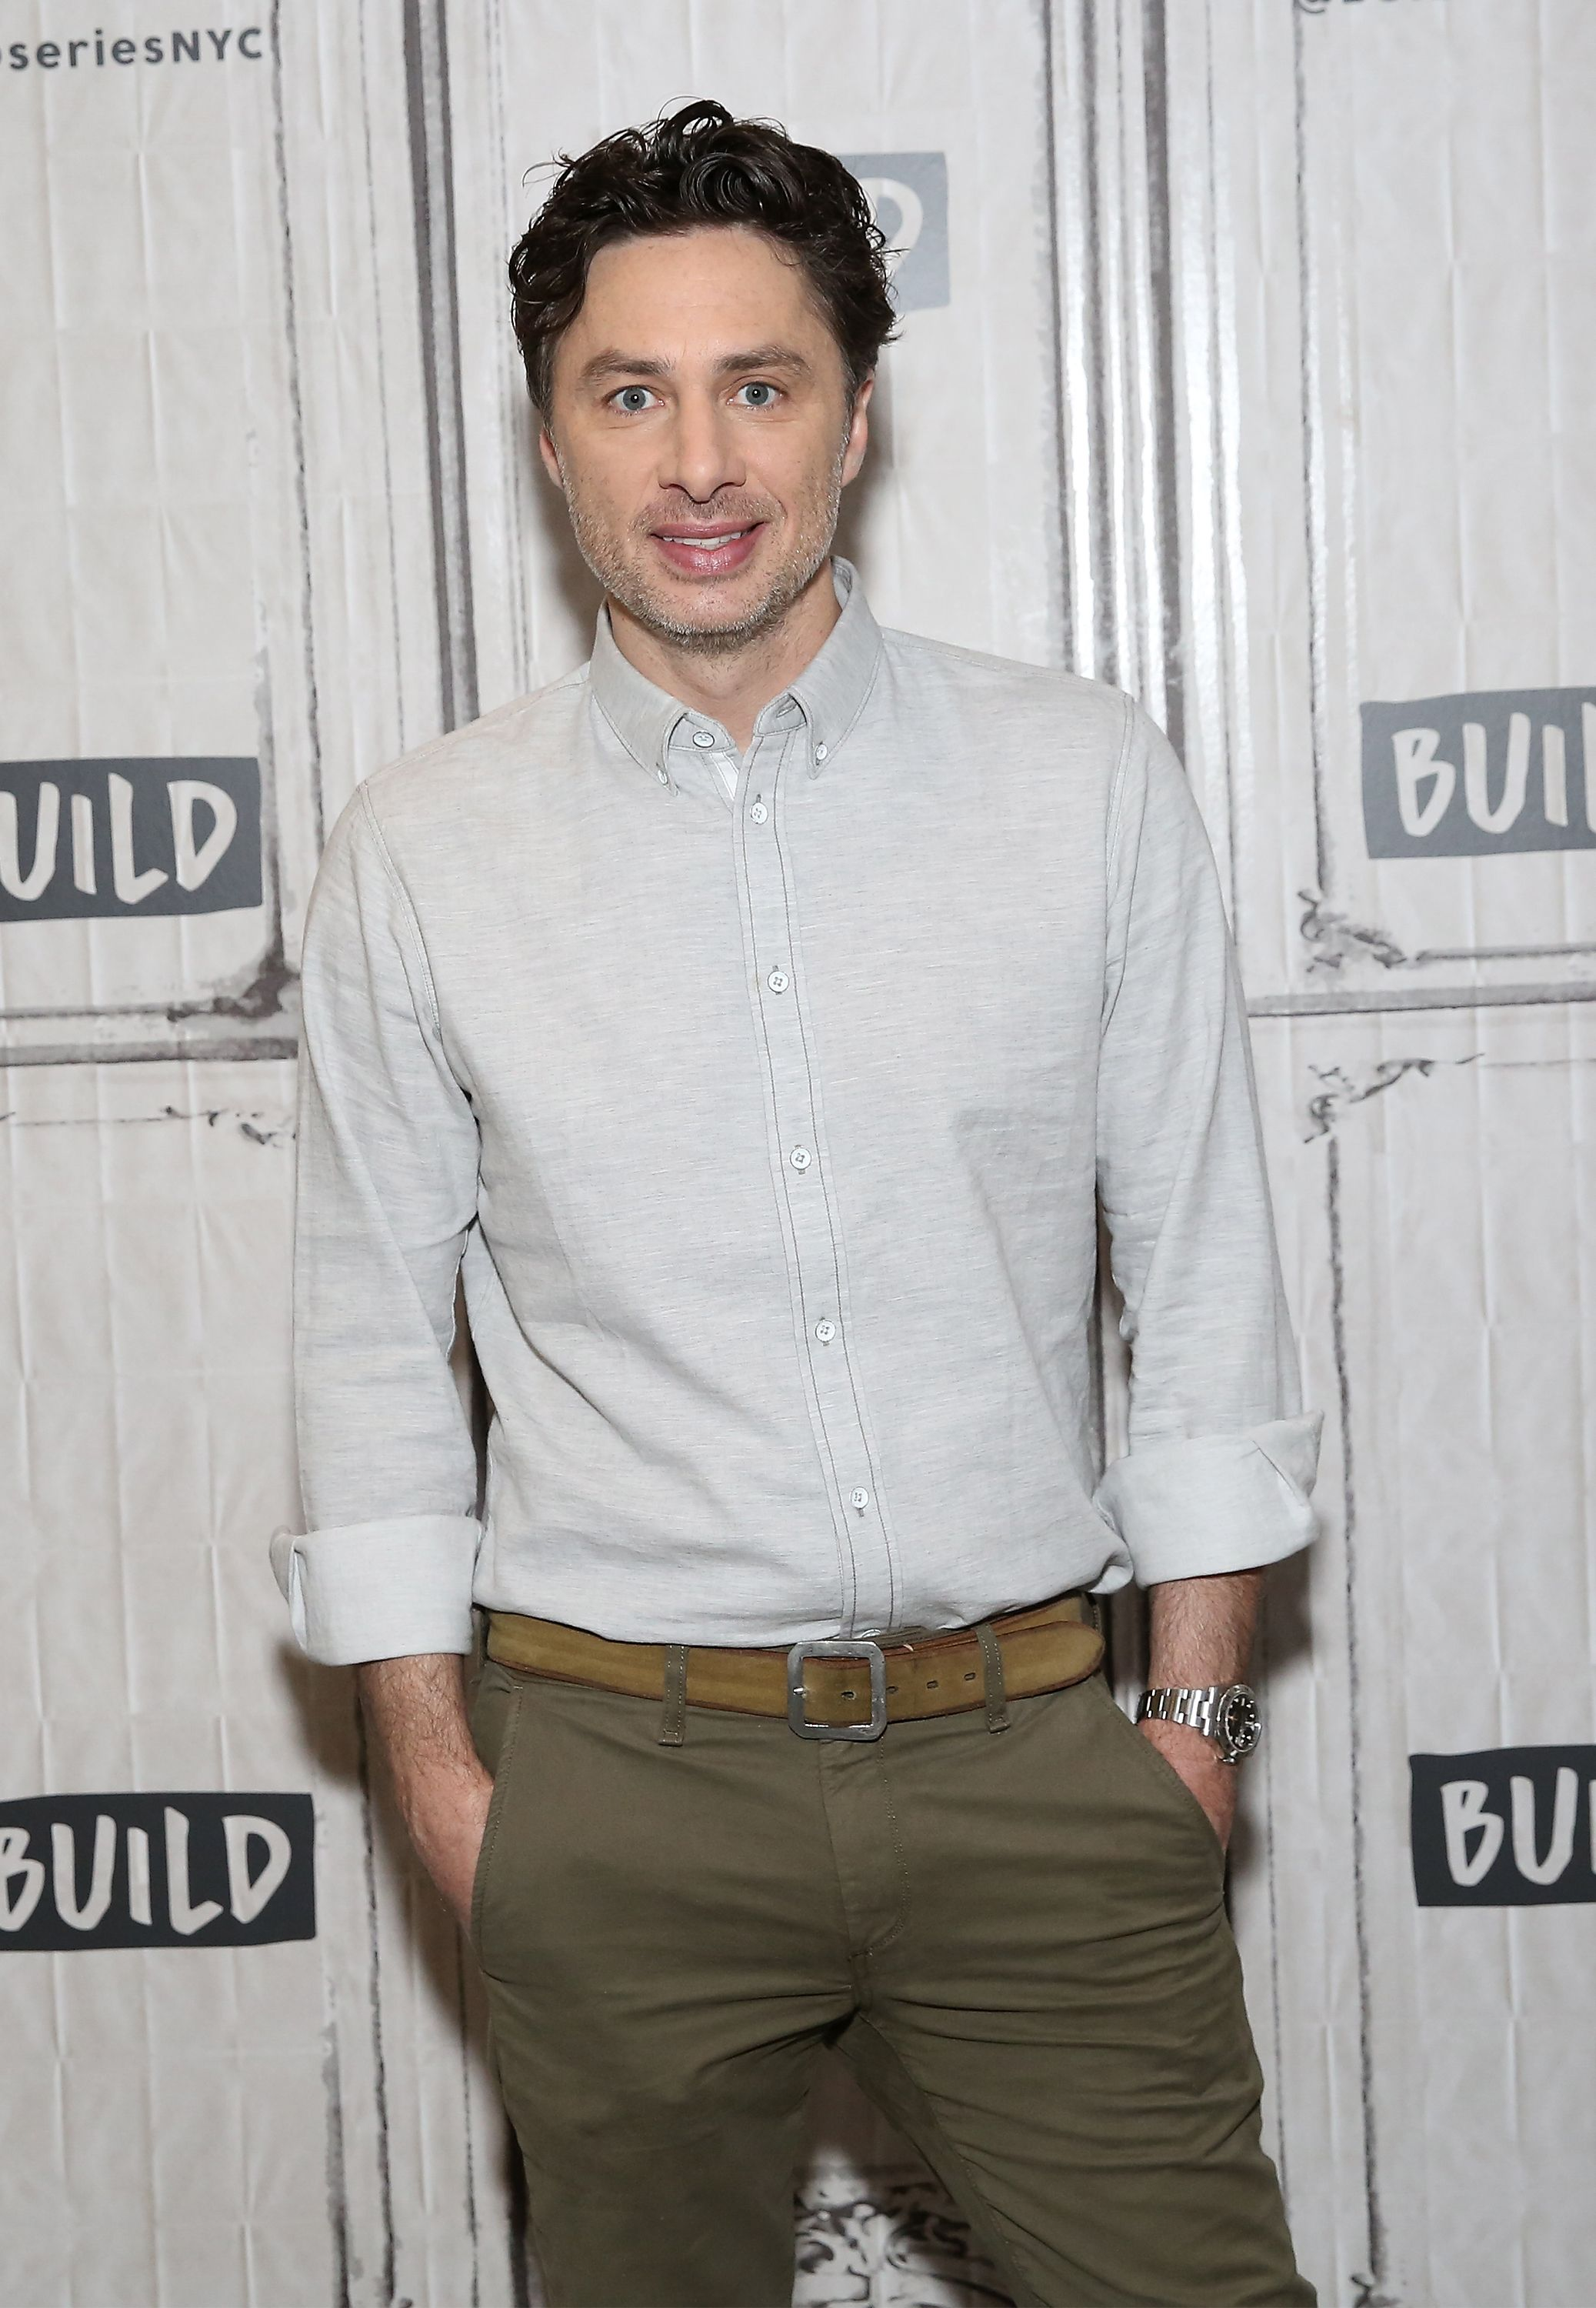 Actor Zach Braff at Build Studio on April 4, 2018 in New York City.   Photo: Getty Images